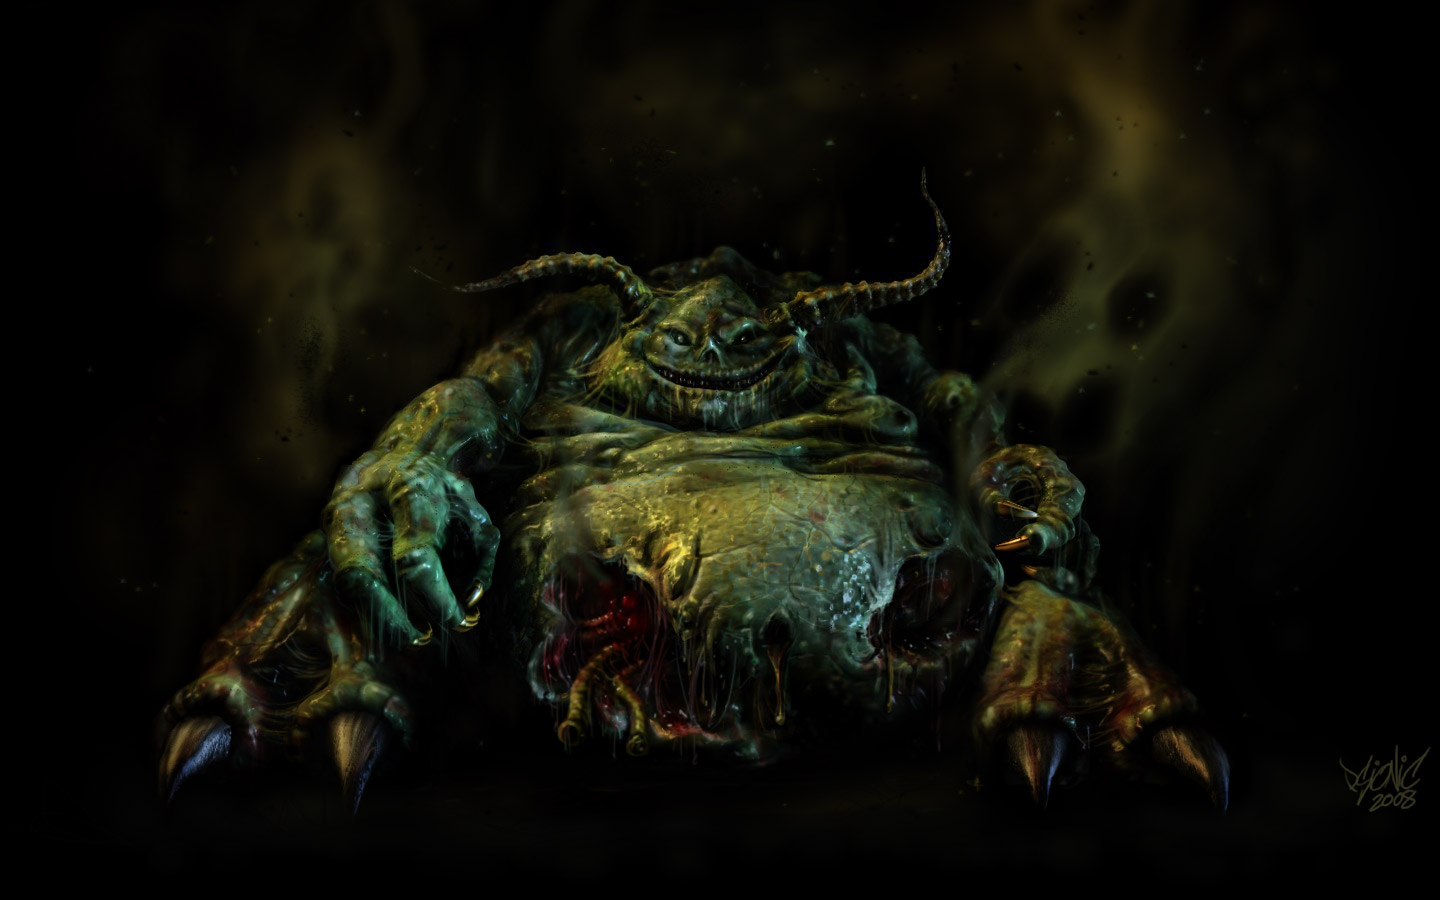 Greater Daemon of Nurgle by psionic on DeviantArt